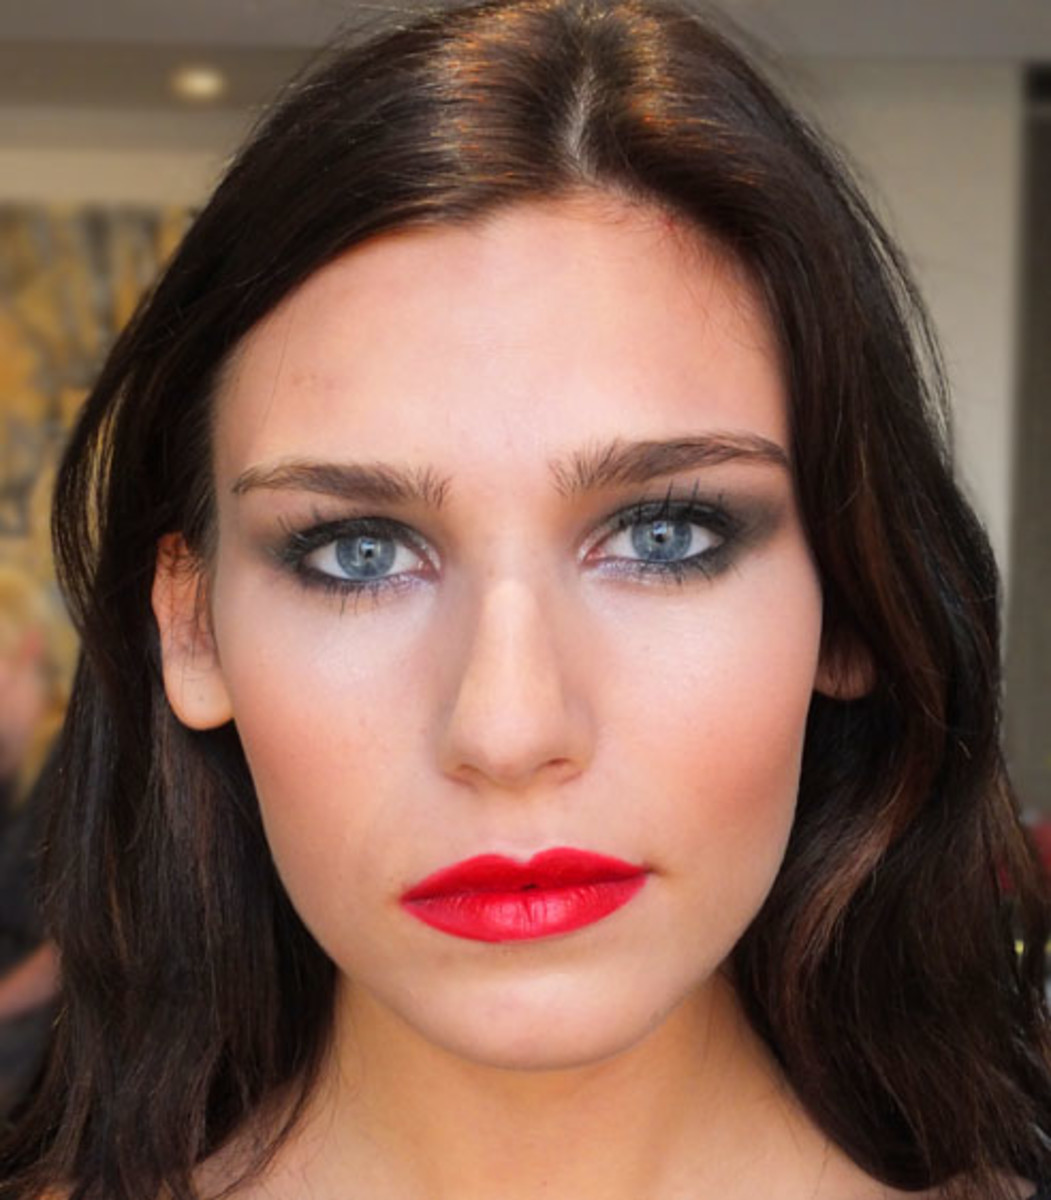 YSL Fall 2012 makeup look_model Andrea Deluca_Ford_2